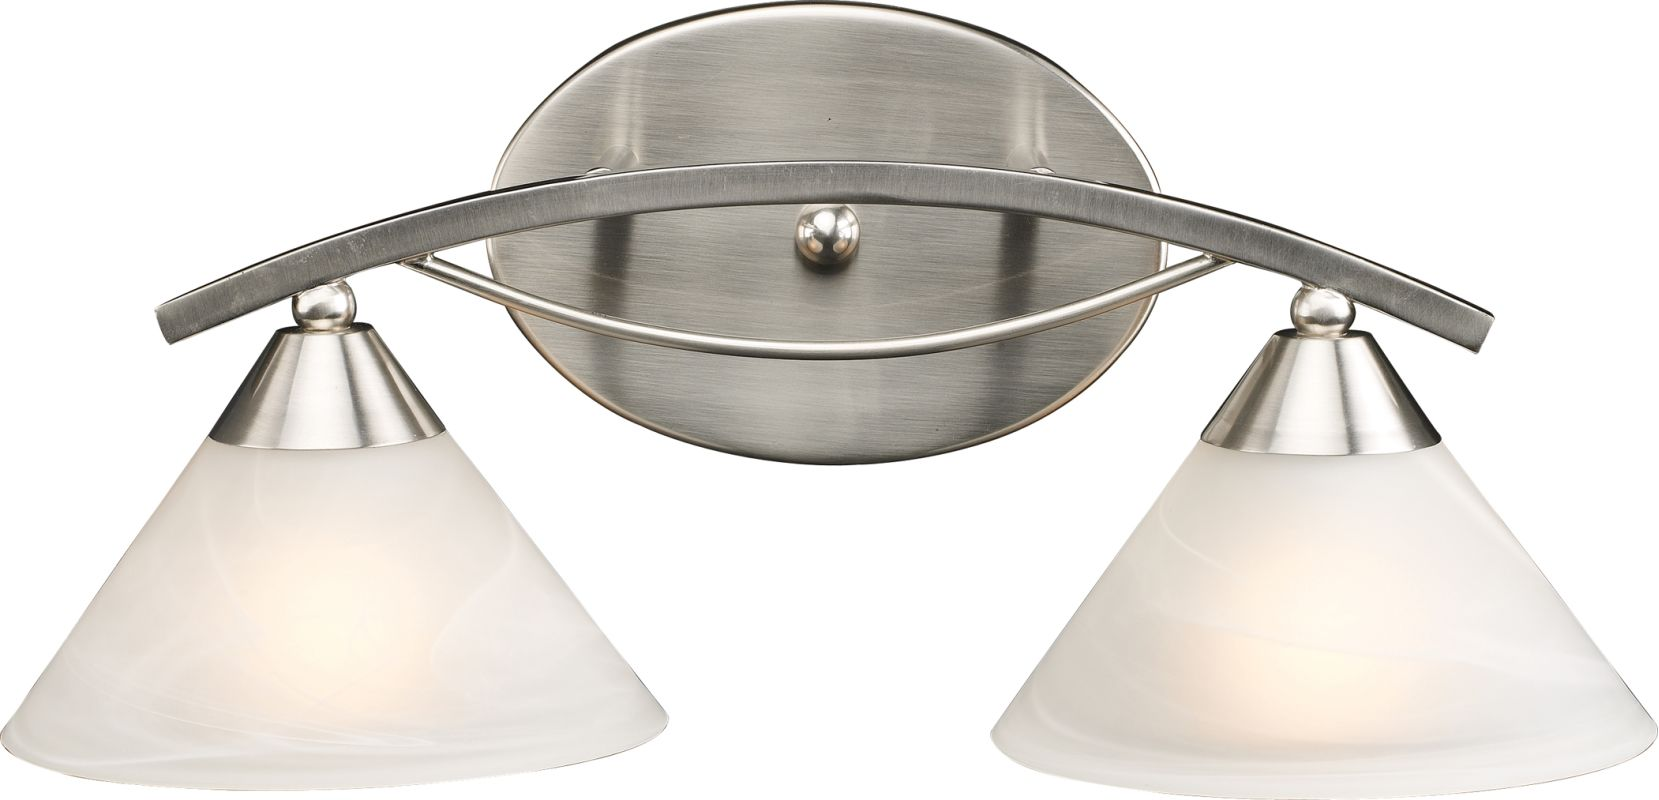 ELK Lighting 7631/2 Elysburg 2 Light Wall Sconce Satin Nickel Indoor Sale $108.00 ITEM: bci574703 ID#:7631/2 UPC: 748119763125 :